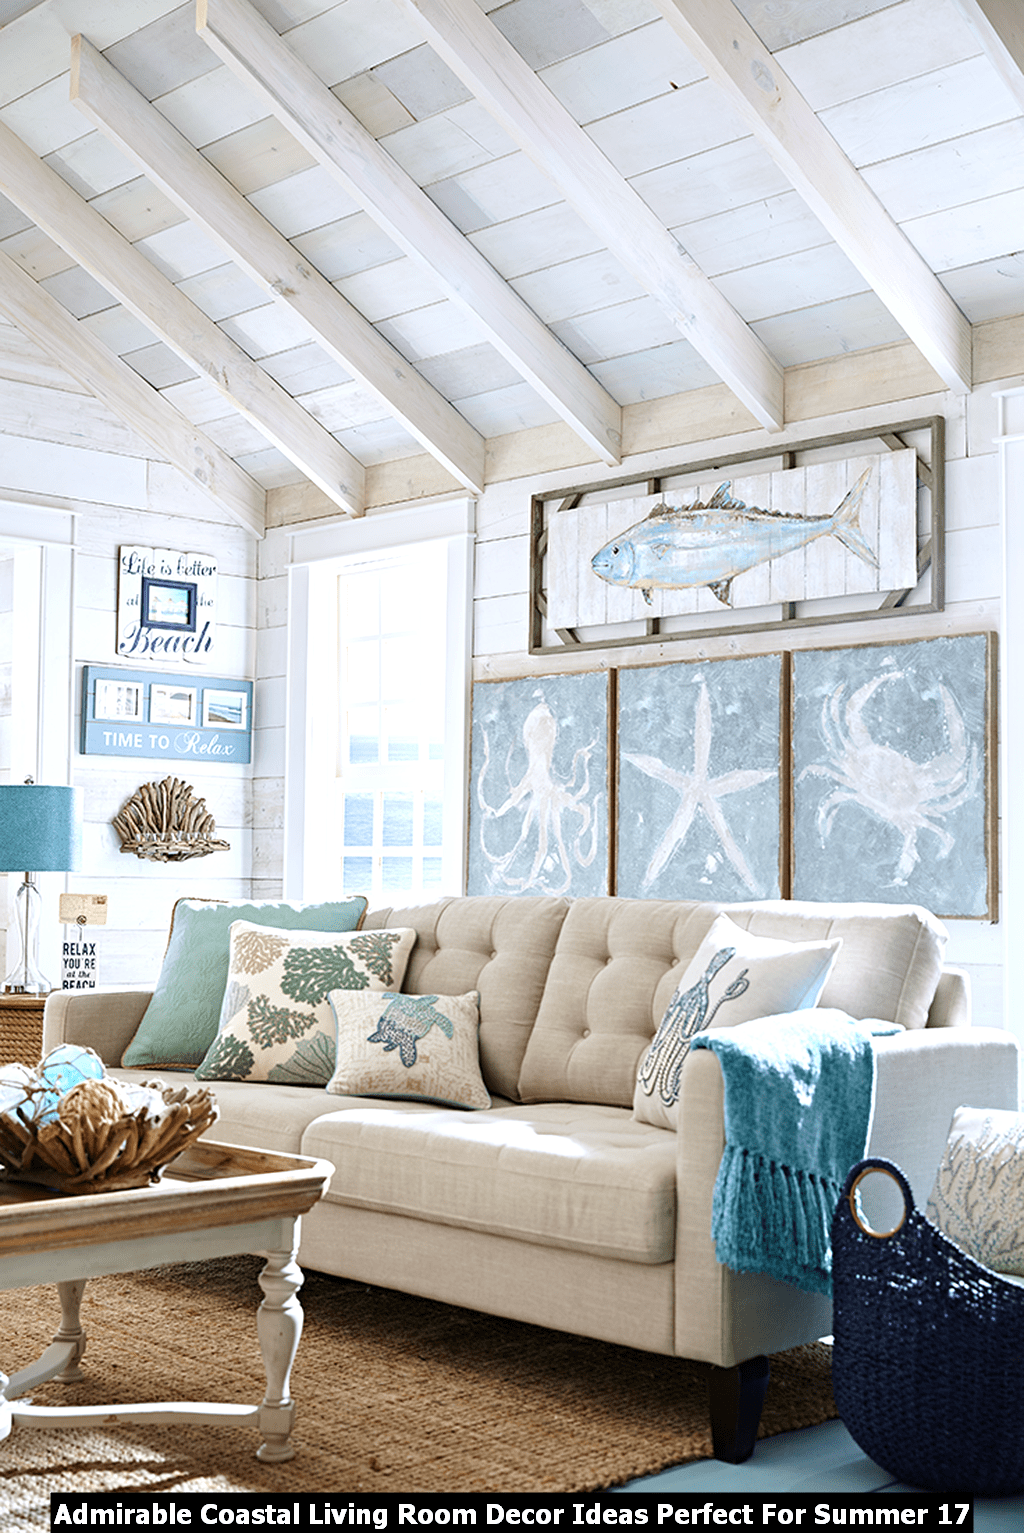 Admirable Coastal Living Room Decor Ideas Perfect For Summer 17